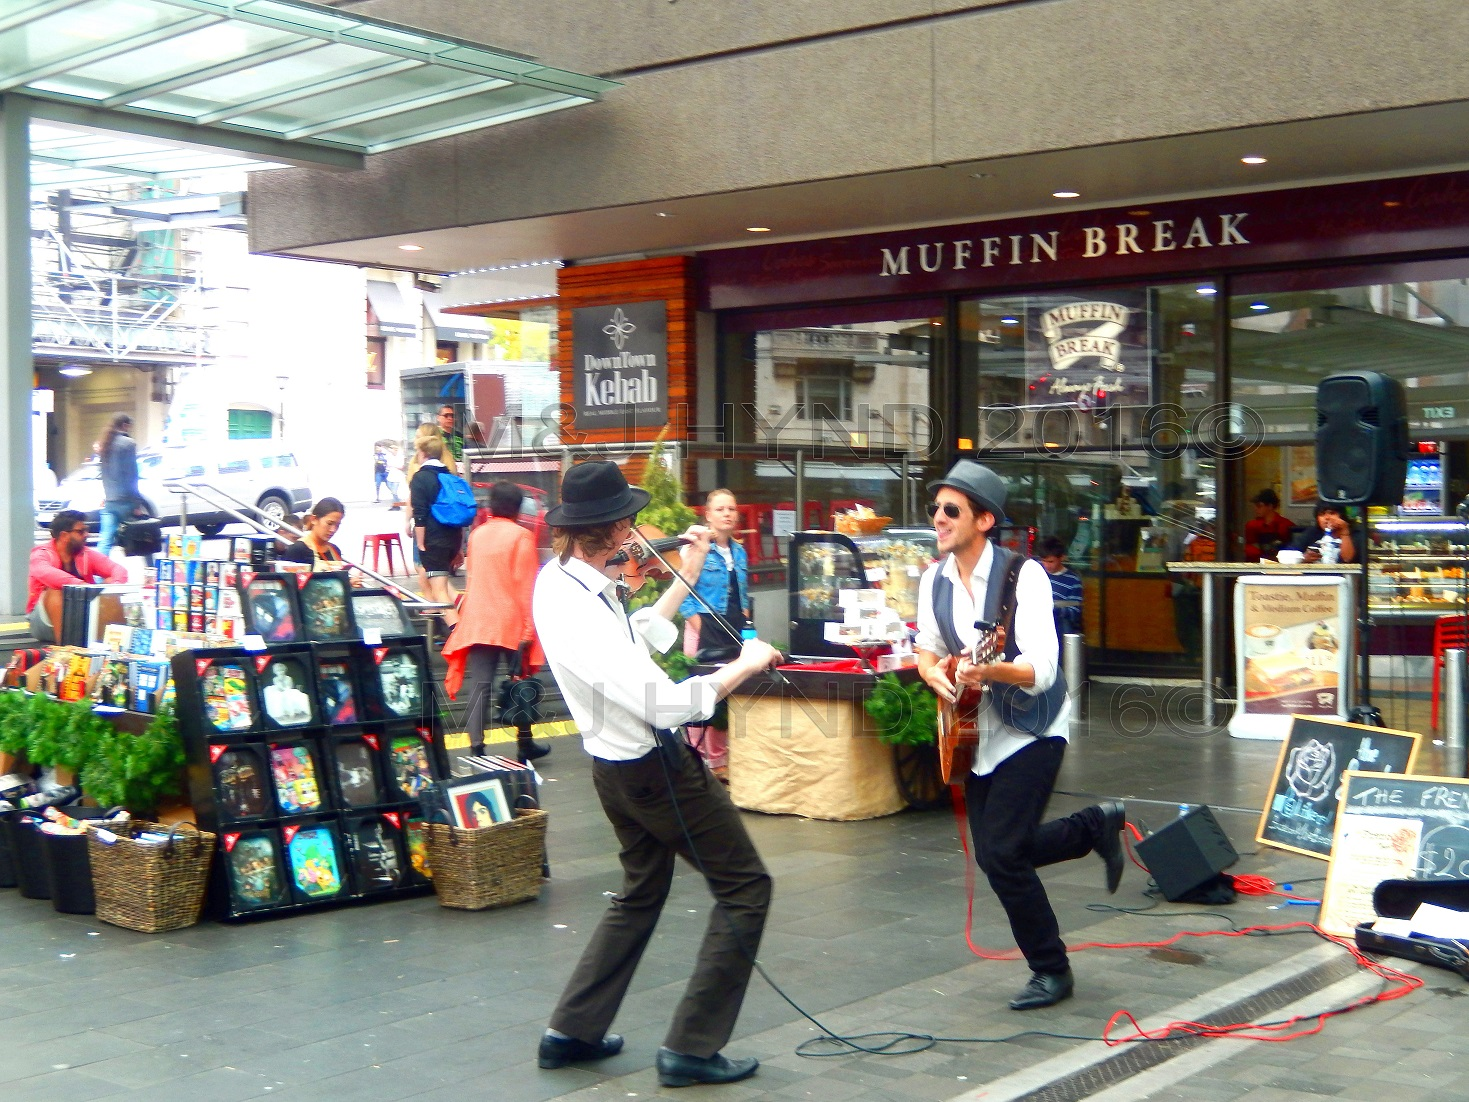 waterfront lively buskers at Muffin Break Queen St, Auckland, NZ